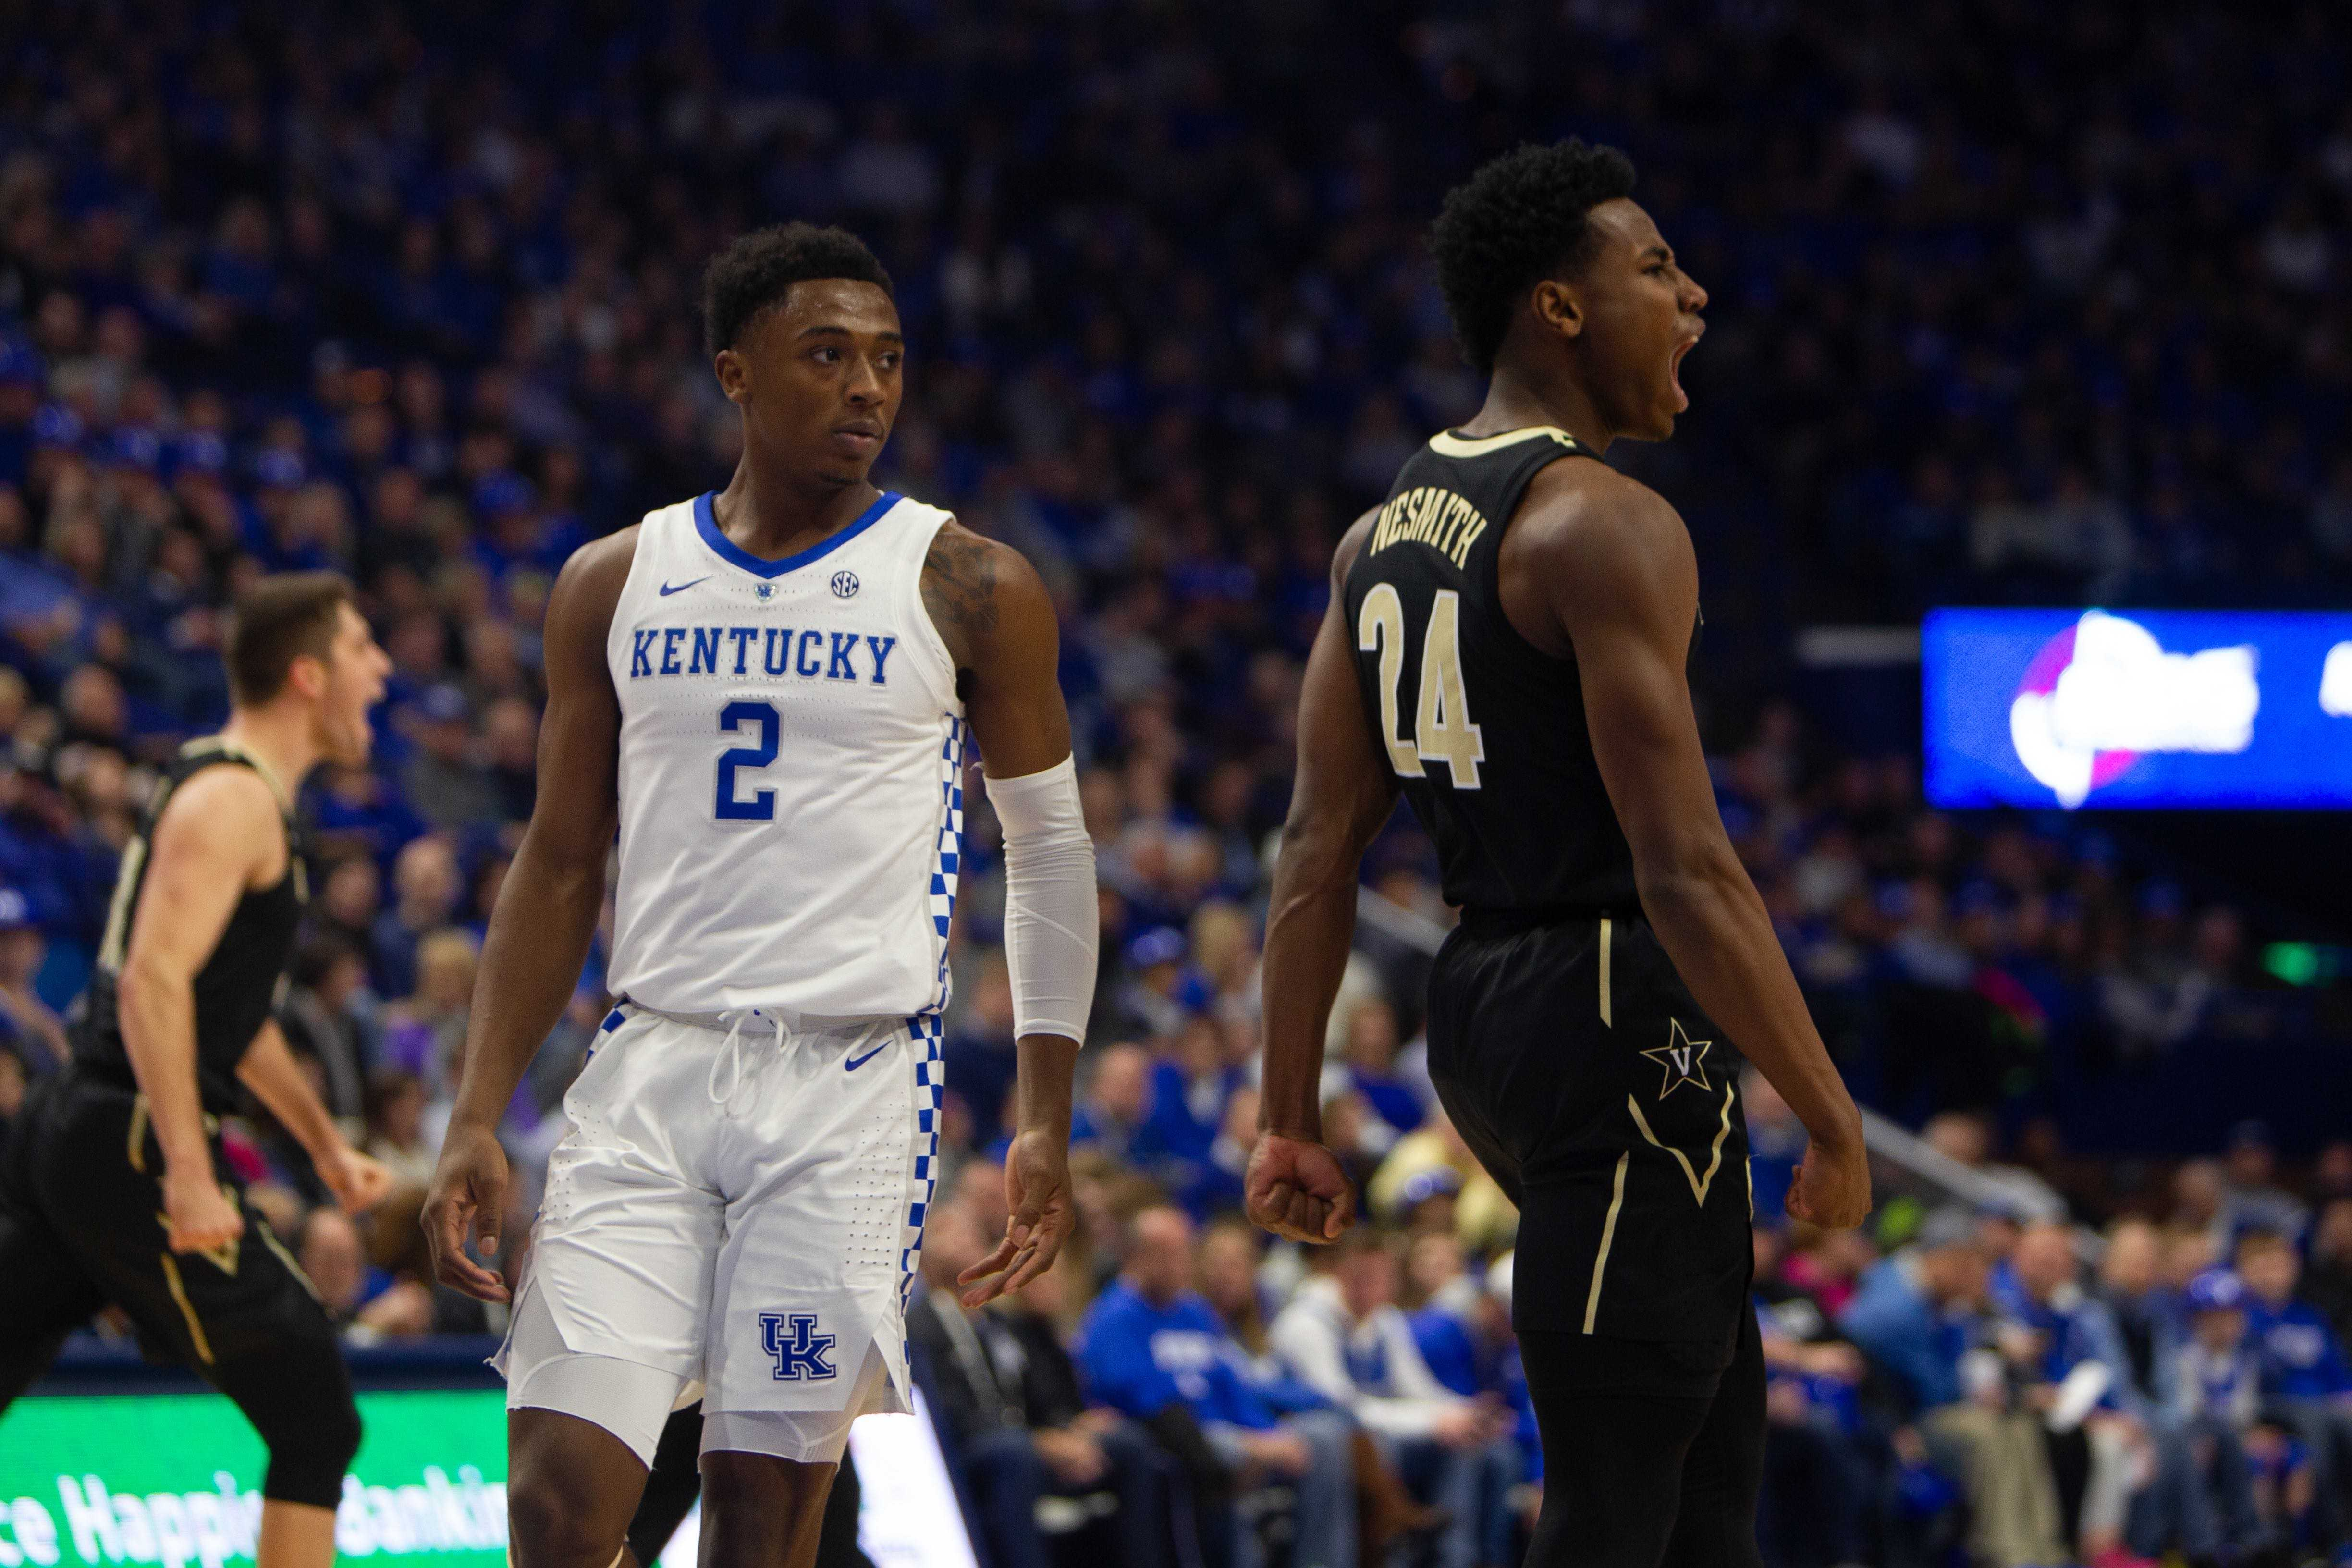 Vanderbilt loses first half lead, falls to Kentucky at Rupp Arena